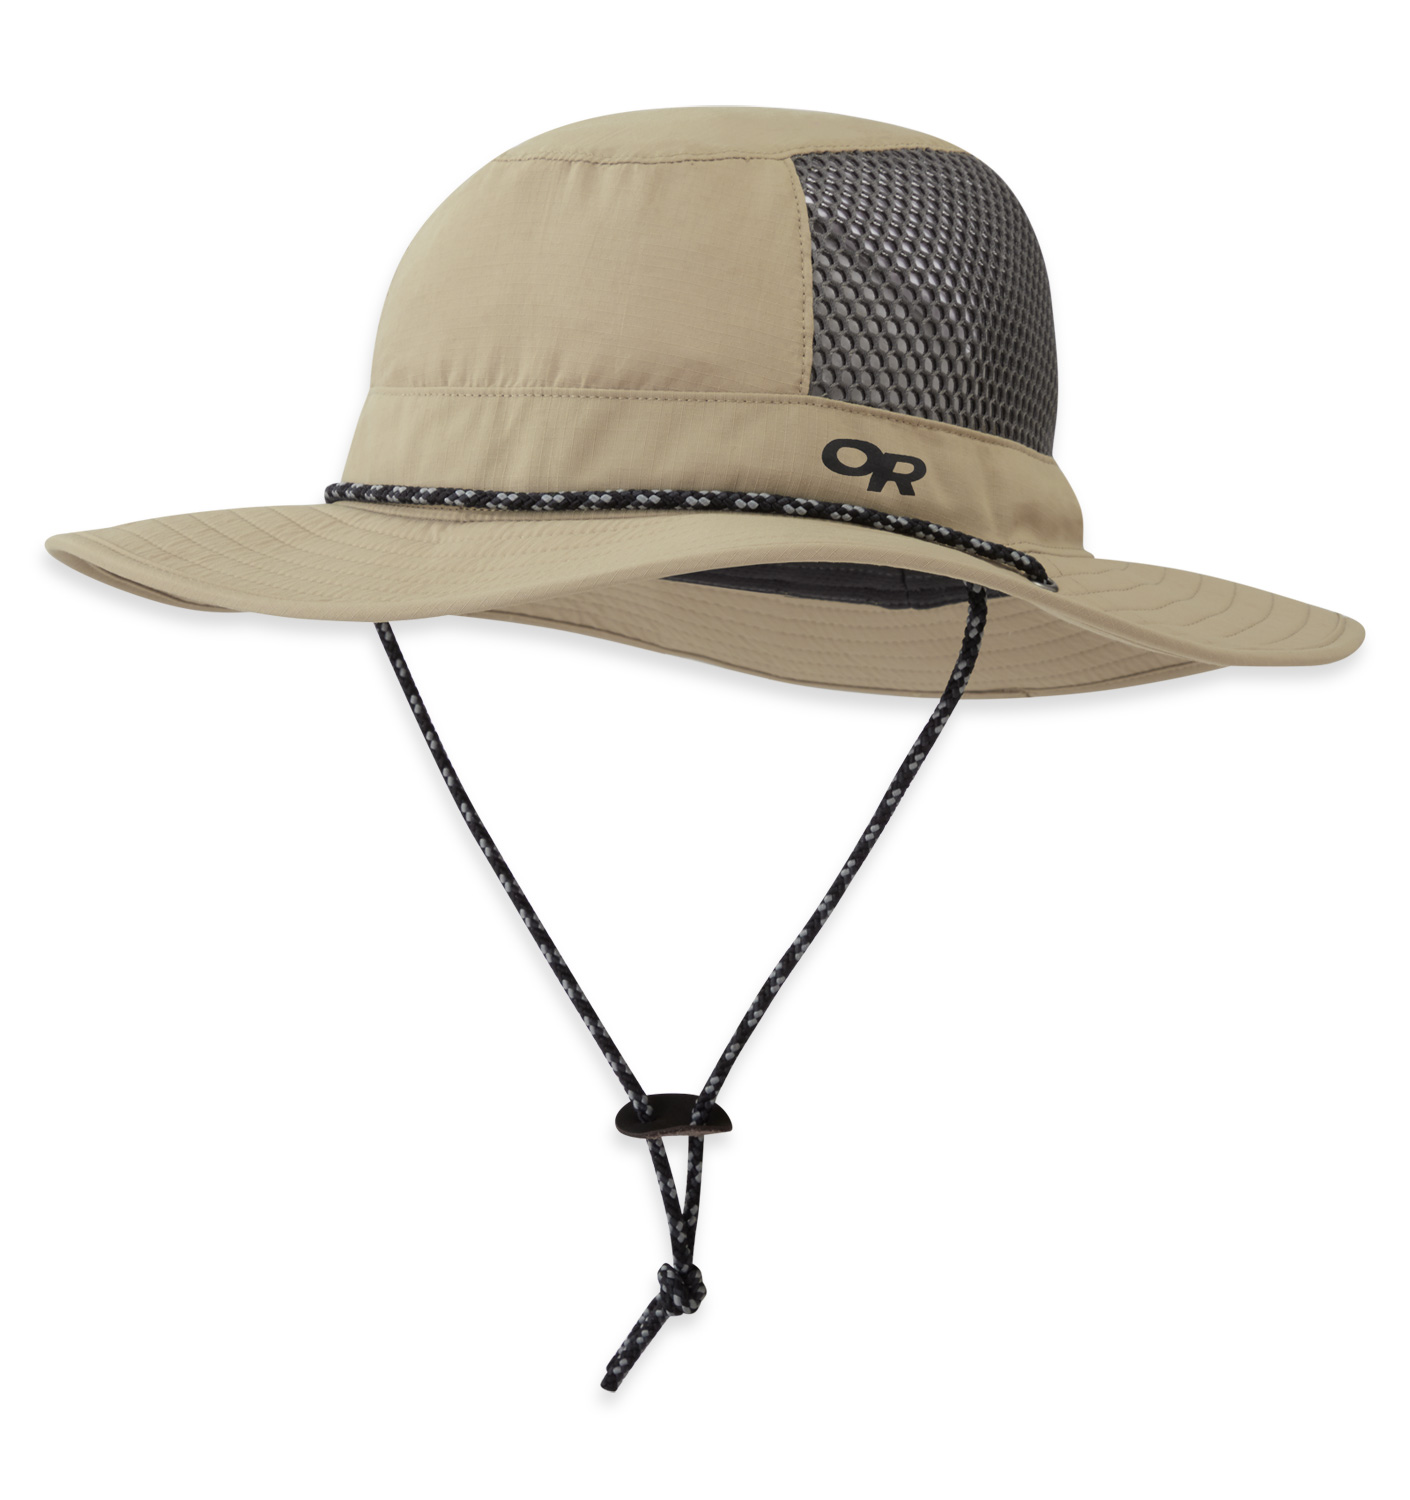 Outdoor Research Nomad Sun Hat, hazelwood - S/M 274473